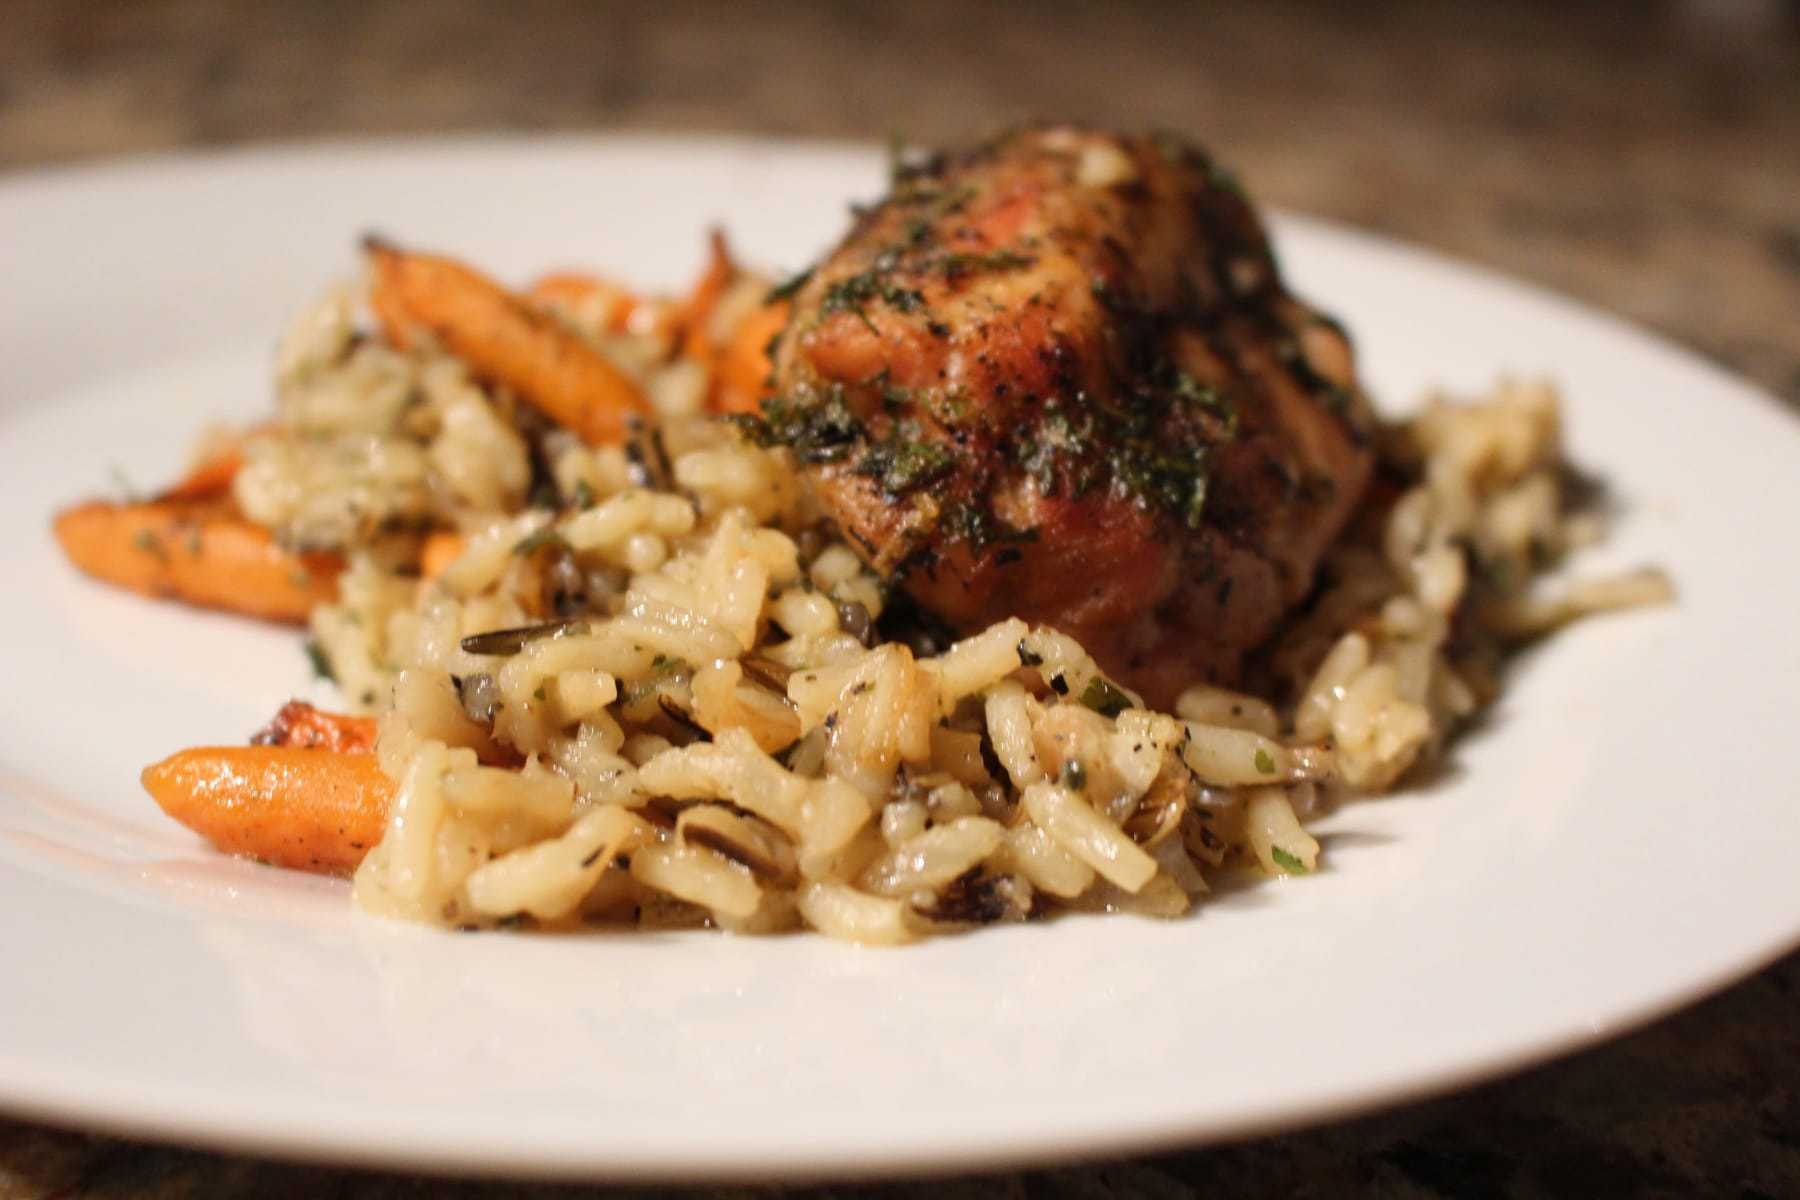 Chicken Amp Wild Rice Bake The Salted Pepper